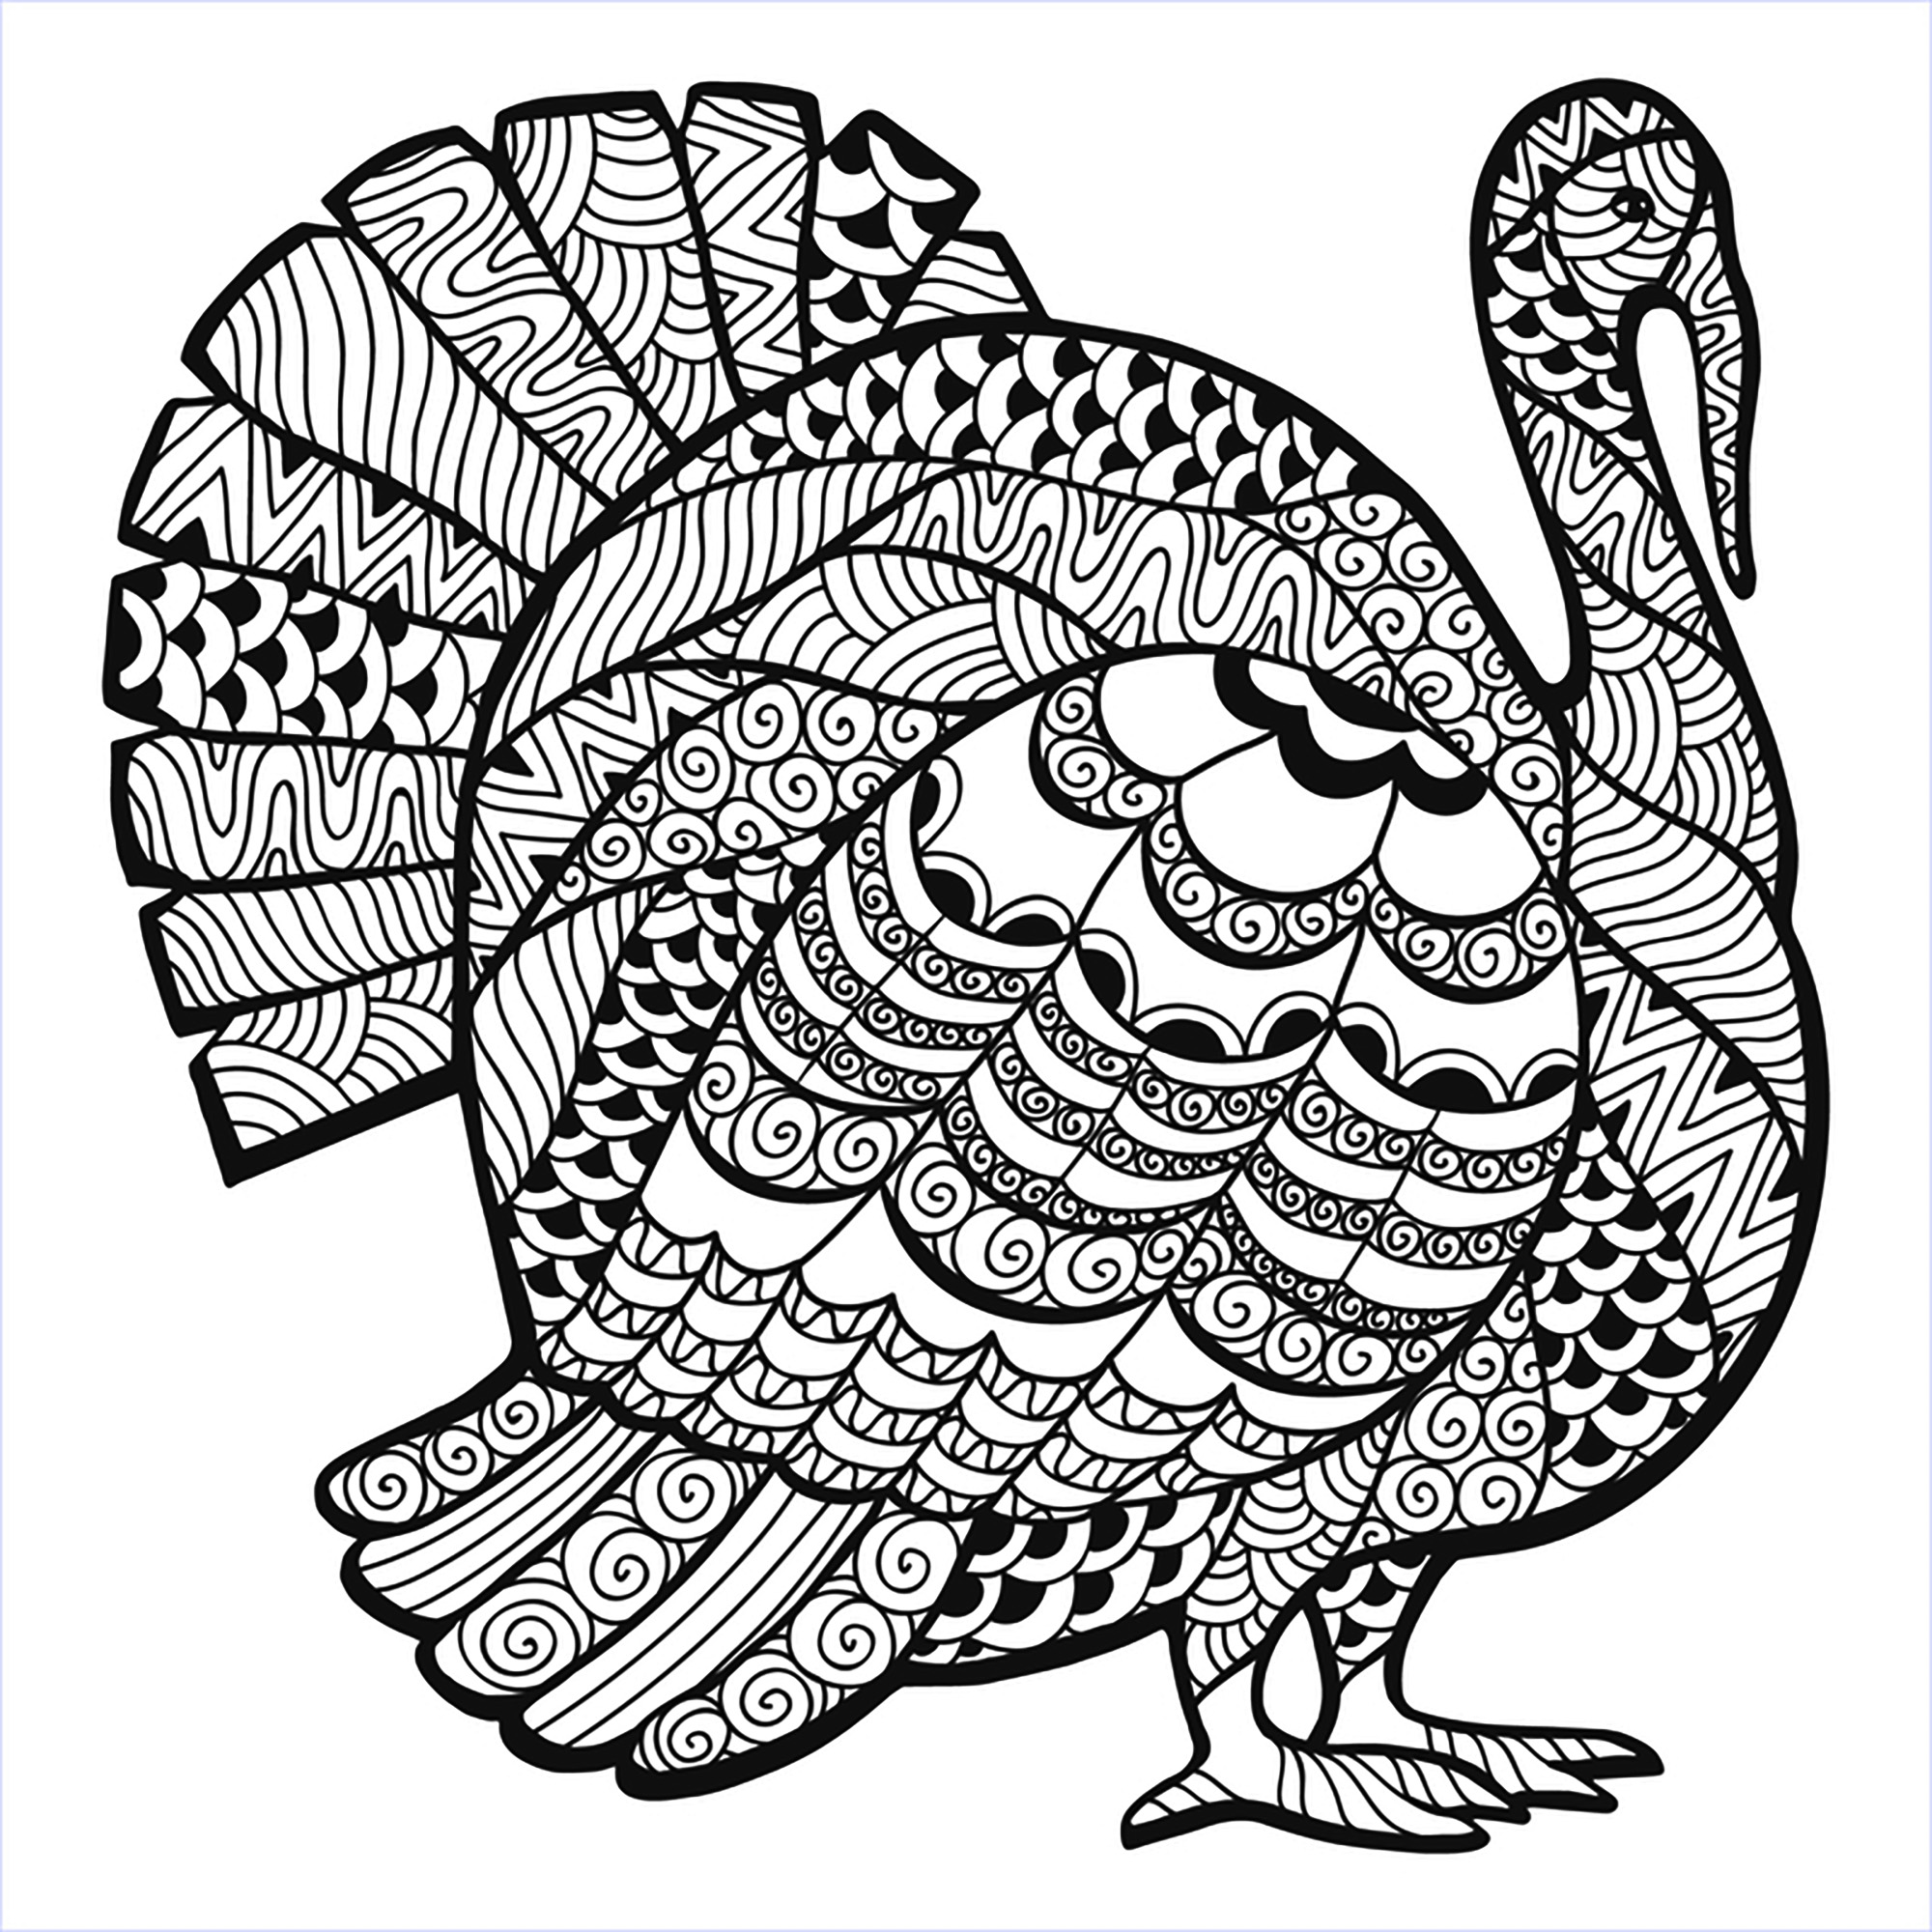 2000x2000 Thanksgiving Zentangle Turkey By Elena Medvedeva Thanksgiving